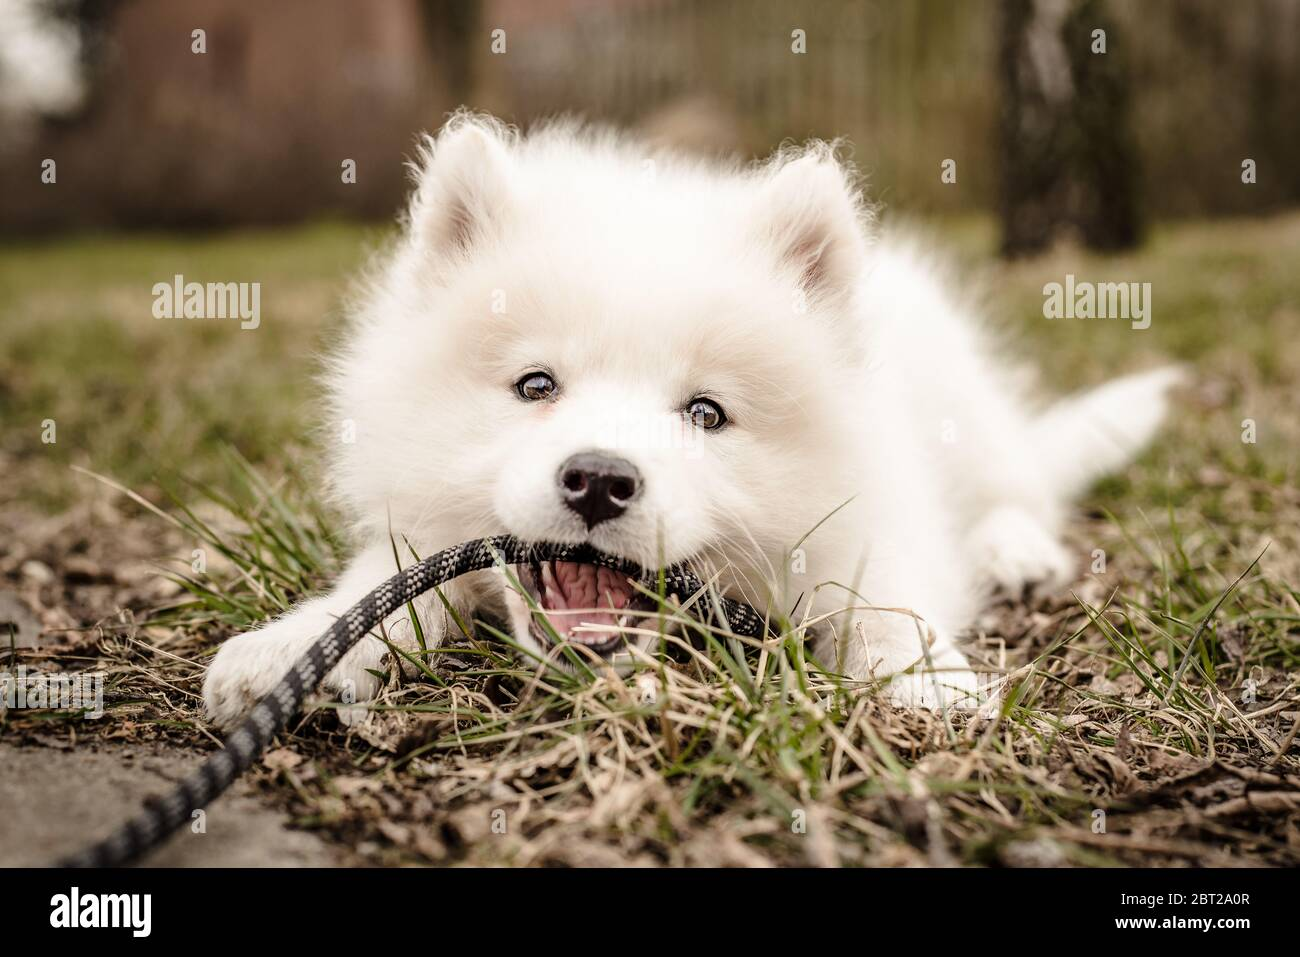 Cute Young Playful Samoyed Puppy Lays In The Grass And Holds Its Leash In Its Mouth Looking At The Camera With A Happy Expression And A Smile Stock Photo Alamy